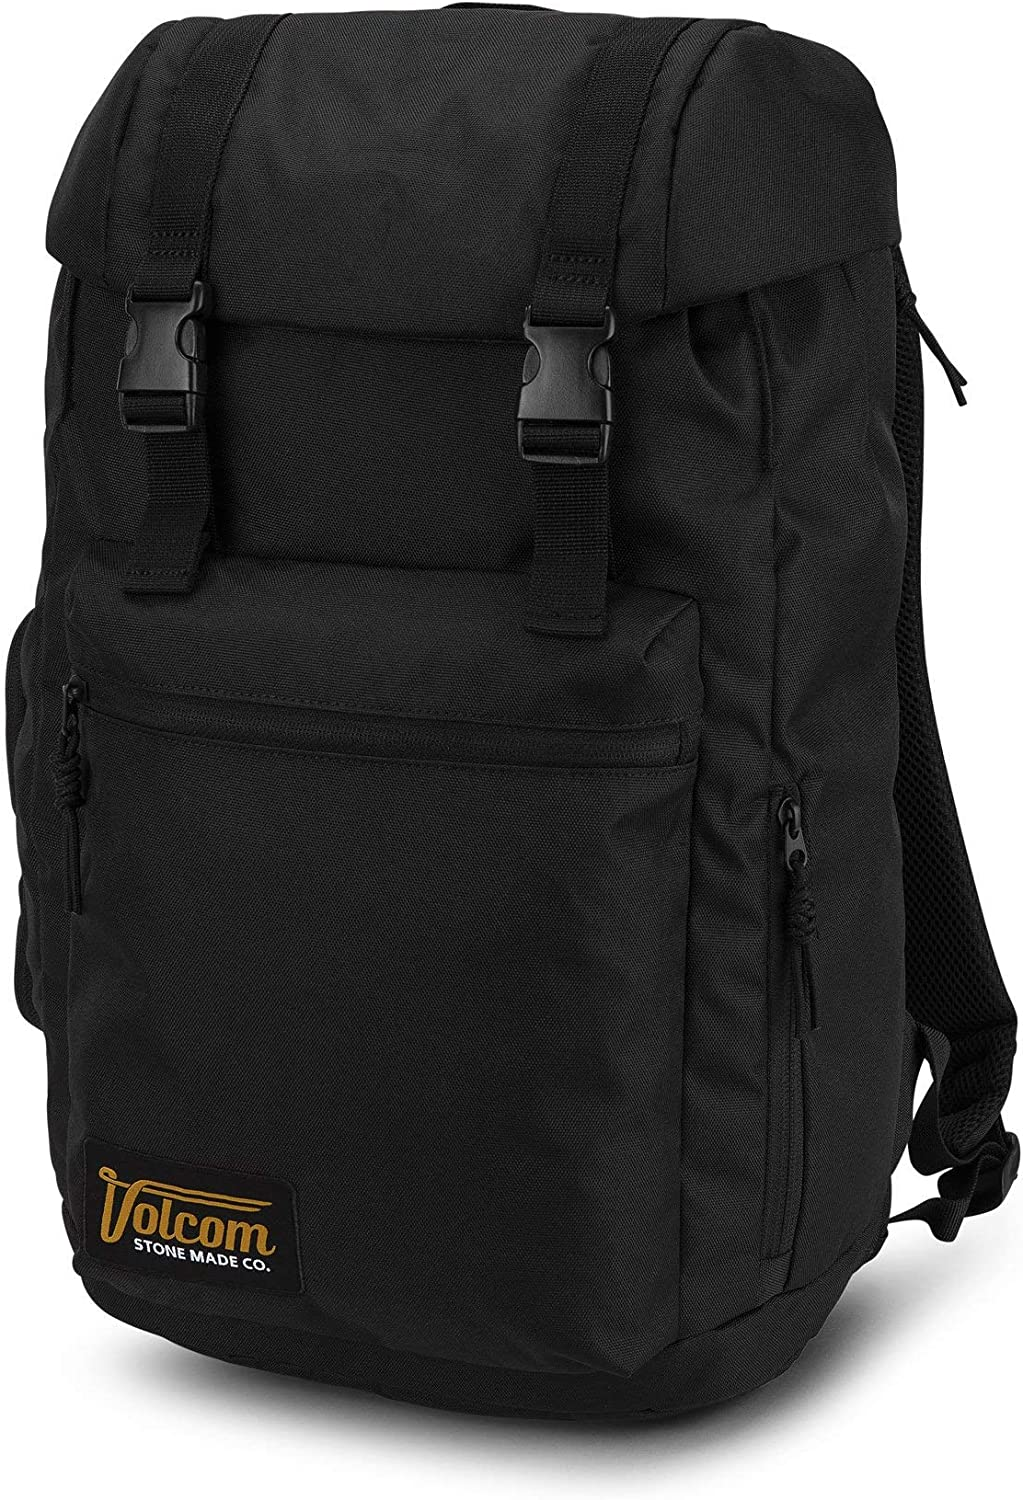 Volcom Men's Ruckfold Laptop Storage Backpack